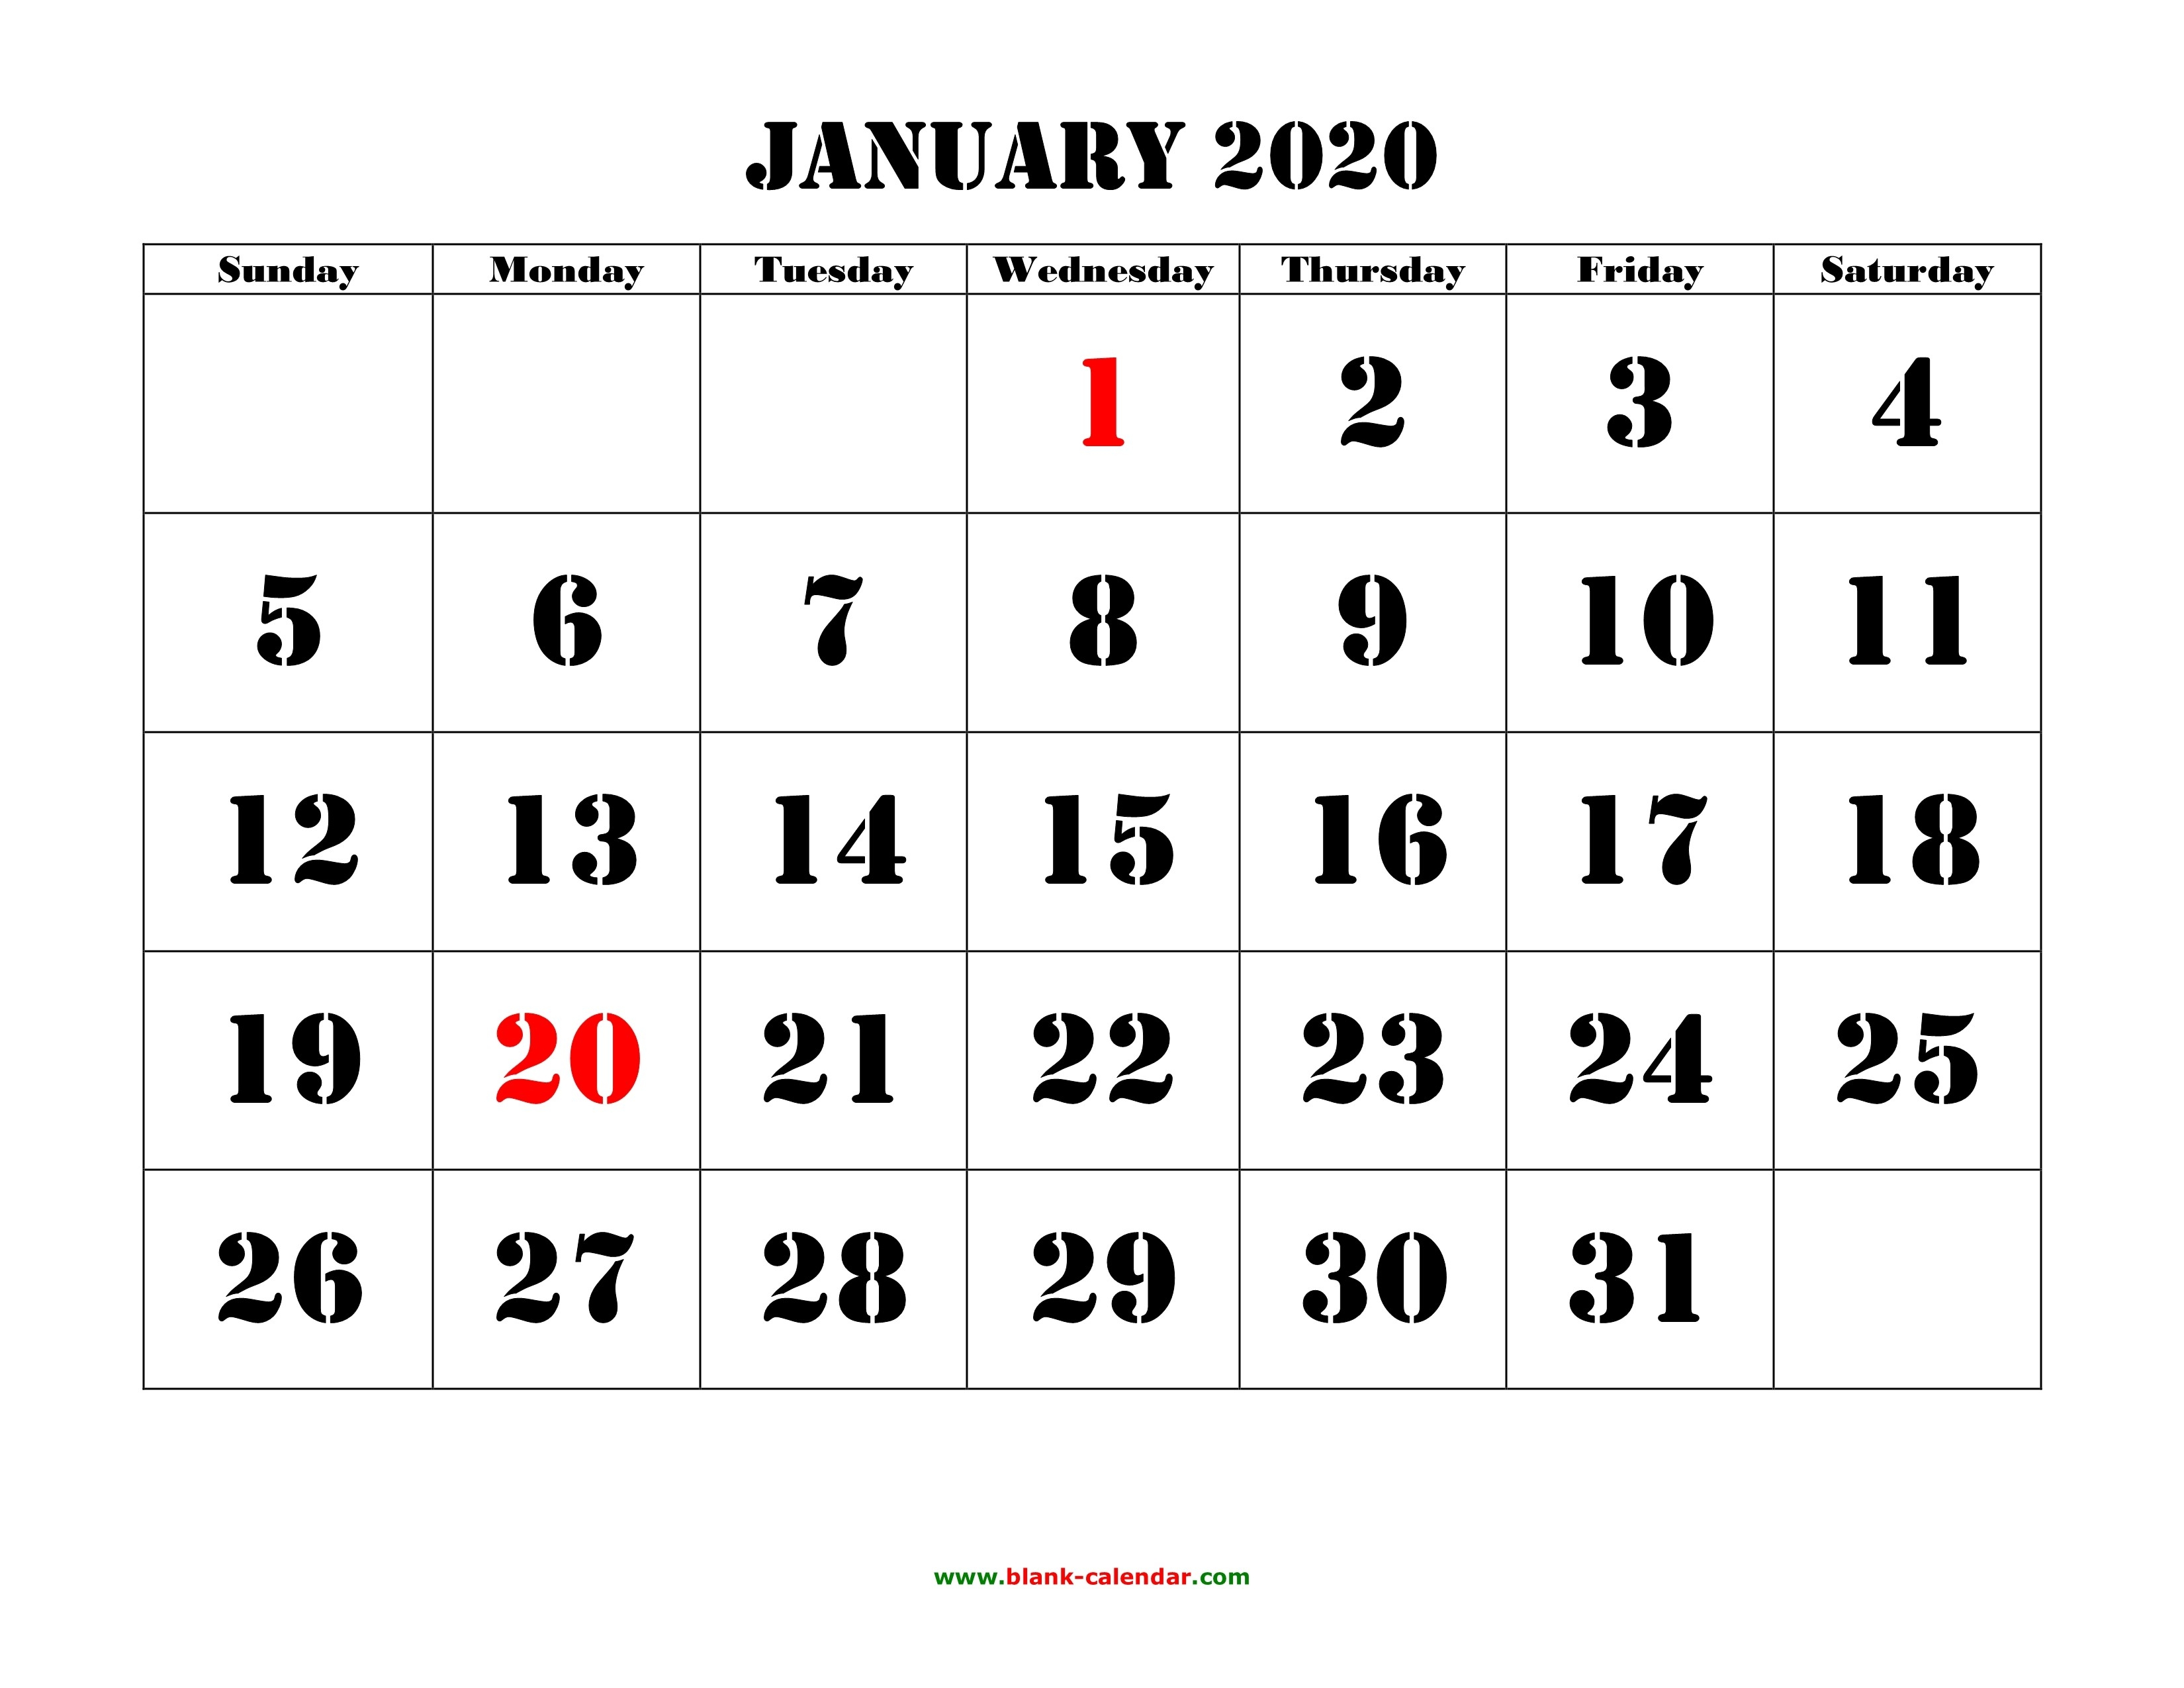 Printable Calendar 2020 | Free Download Yearly Calendar-Blank Calandar Of Events 2020